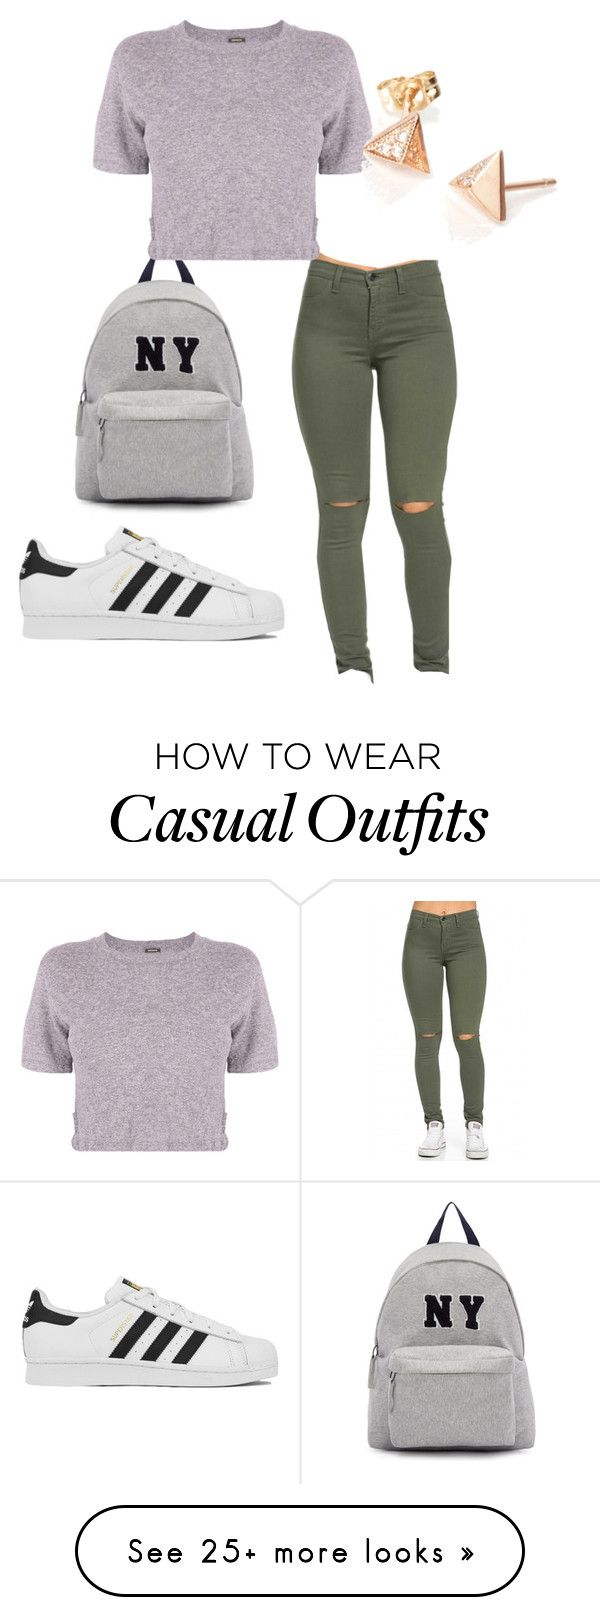 """Casual"" by aishaamin25 on Polyvore featuring Joshua's, Monrow, adidas, women's clothing, women's fashion, women, female, woman, misses and juniors"